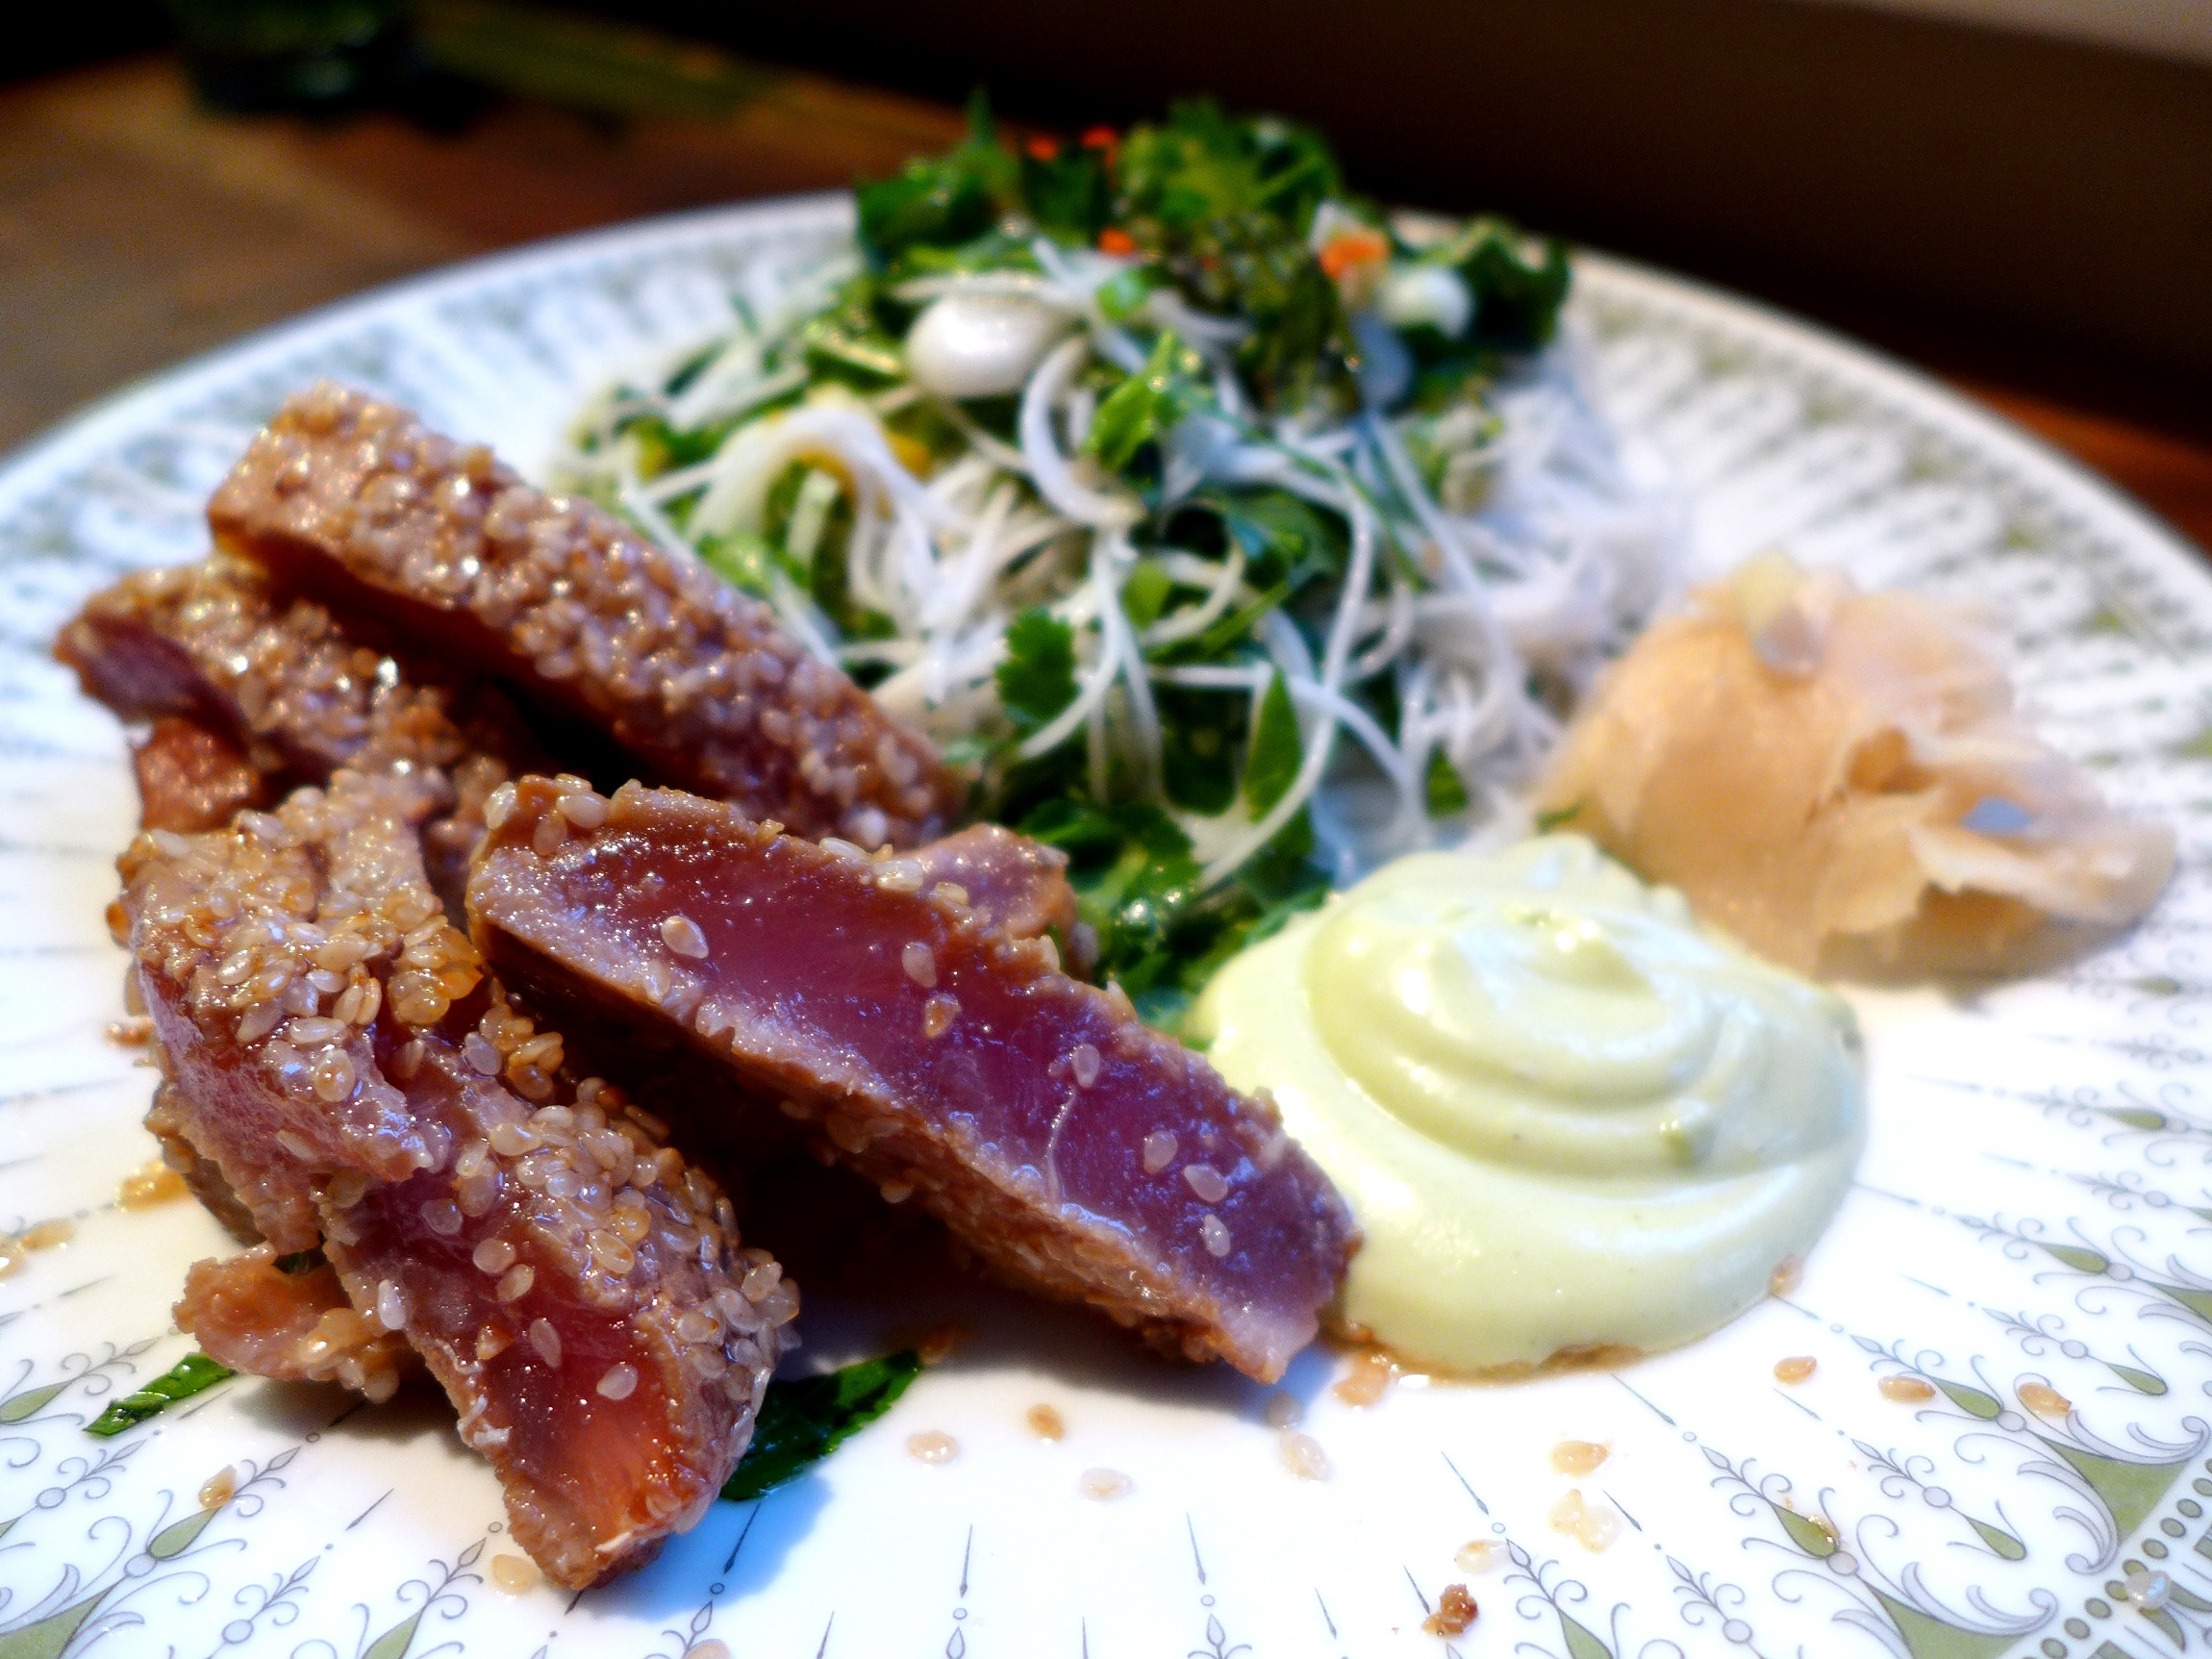 Discussion on this topic: Teriyaki Beef with Wasabi Mayonnaise and Chilled , teriyaki-beef-with-wasabi-mayonnaise-and-chilled/